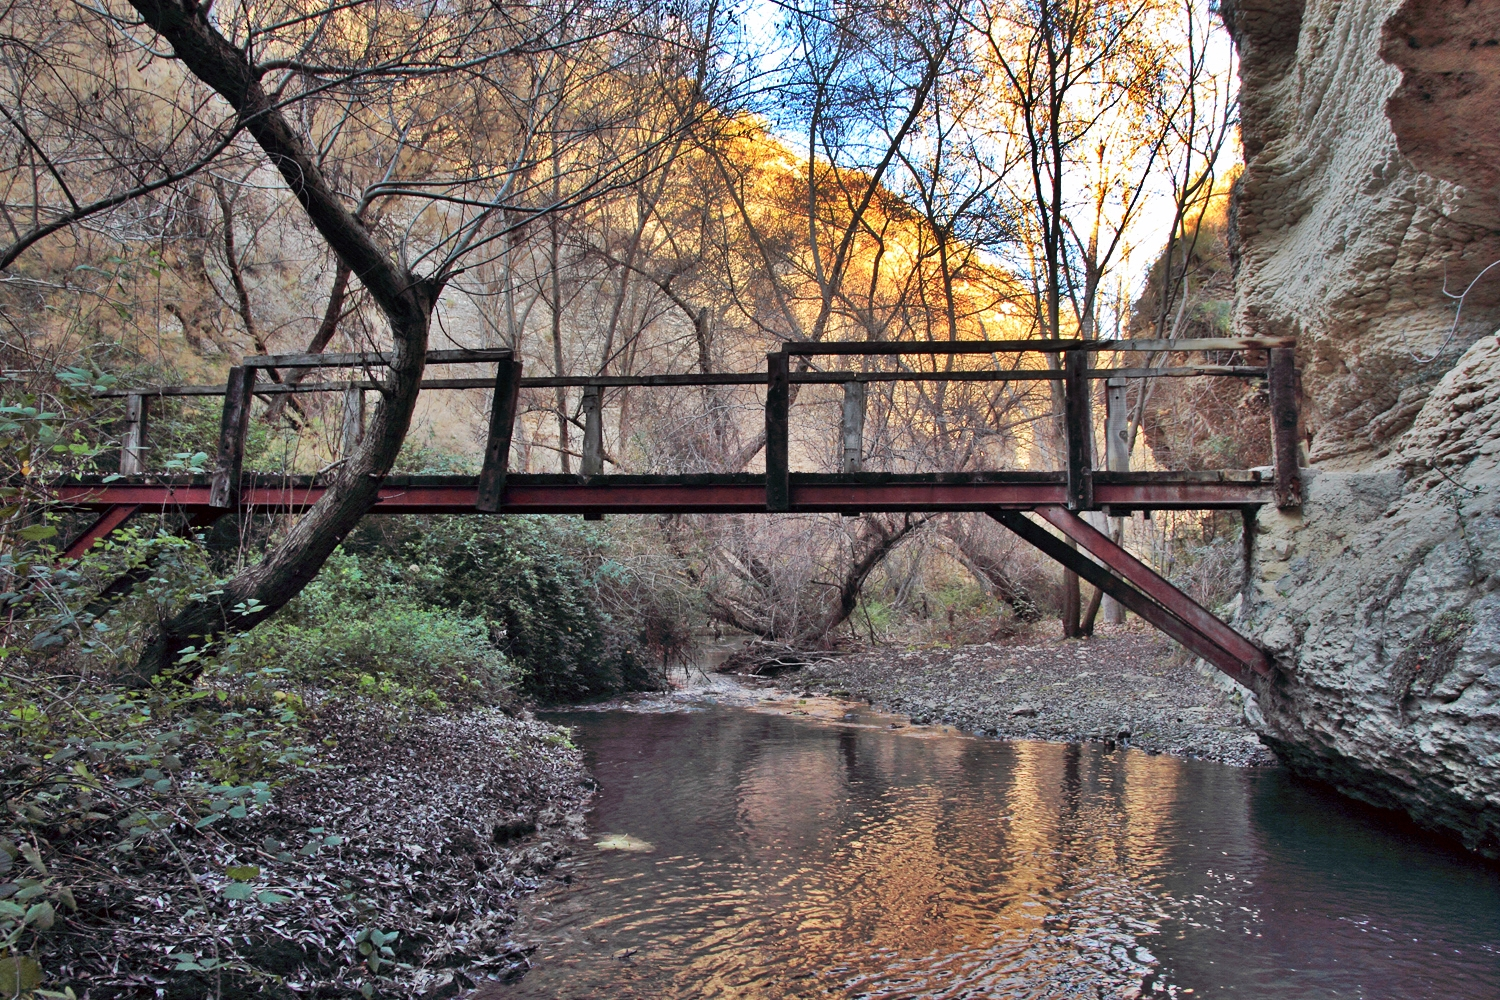 """The Wooden Bridge"" - Rio Cacin, Cacin, Granada - B05207"